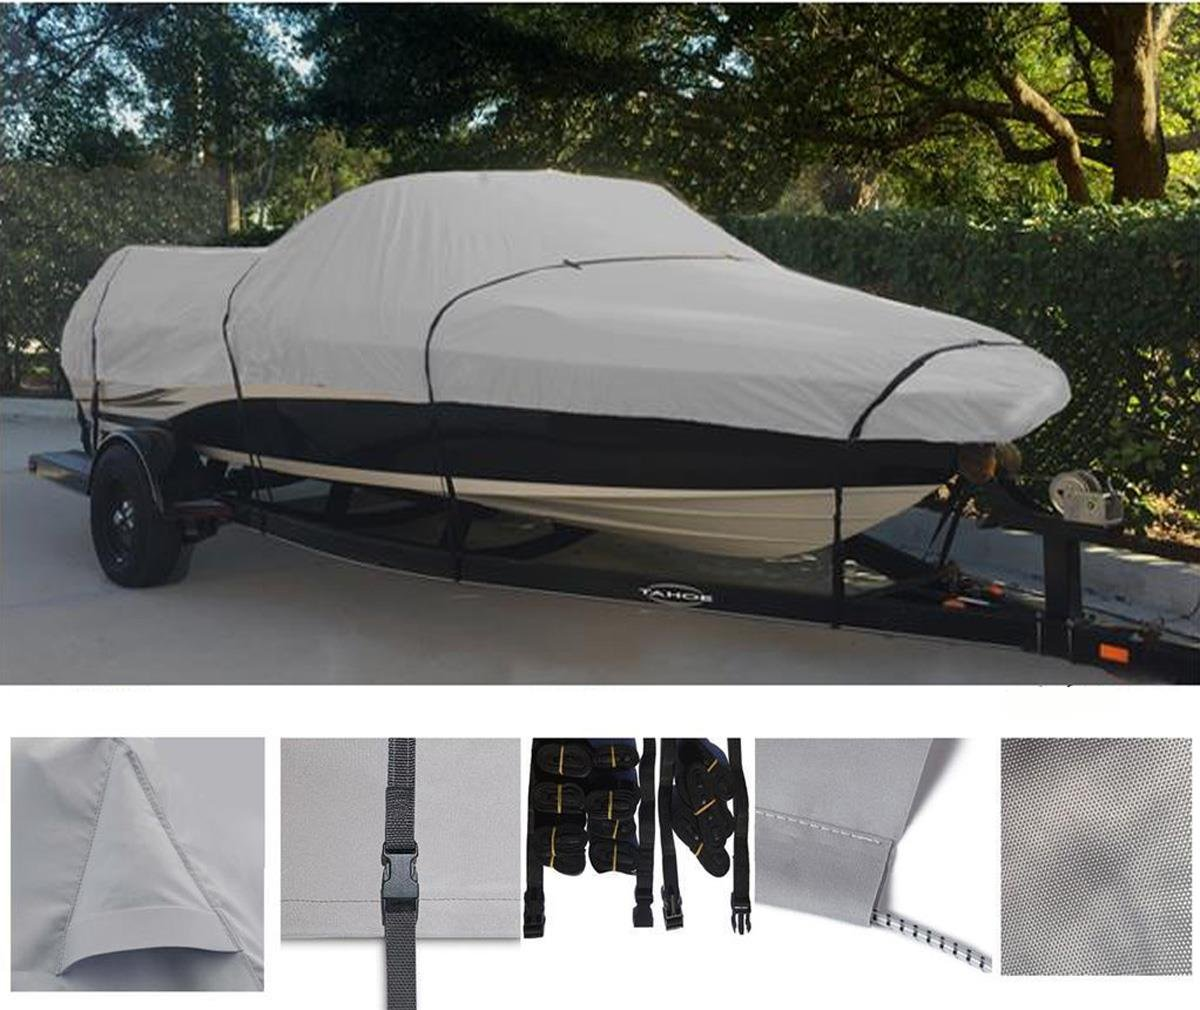 GREY, STORAGE, TRAVEL, MOORING BOAT COVER FOR SEA DOO Sportster LE LT 2001 2002 2003 2004 2005 2006 by SBU